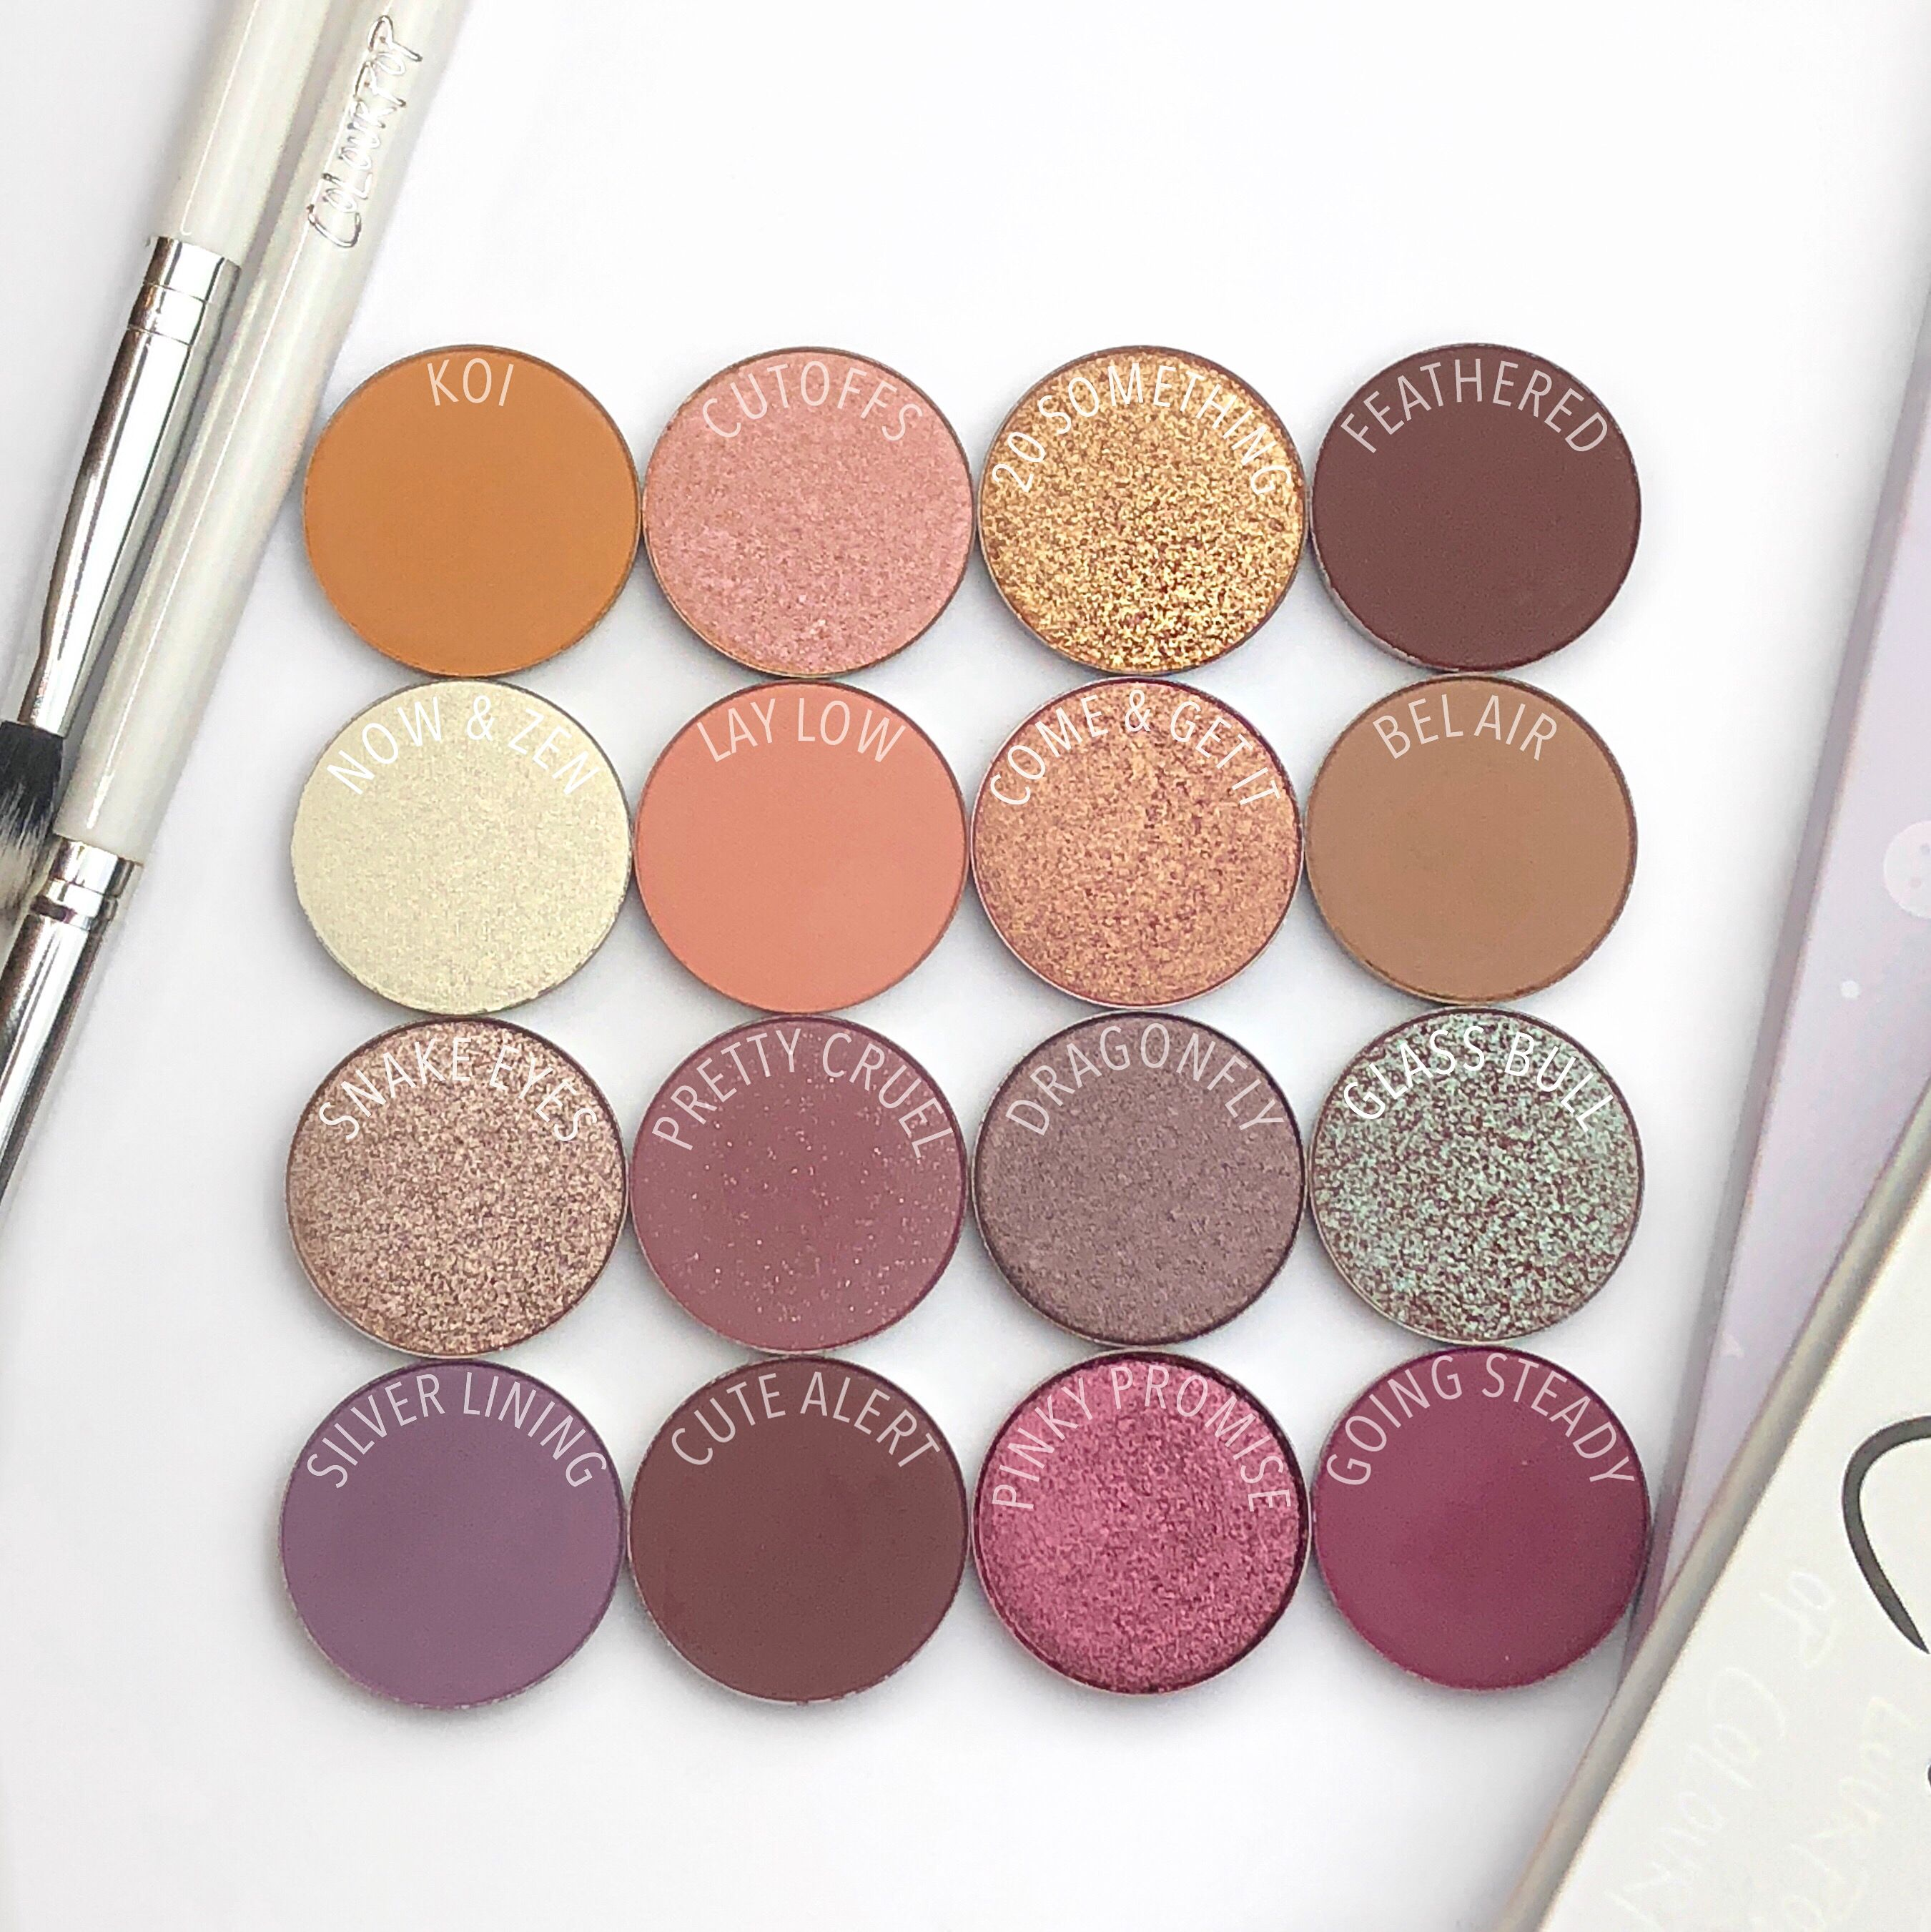 Colourpop BYOP Inspiration for ya IG makeup.just.for.fun